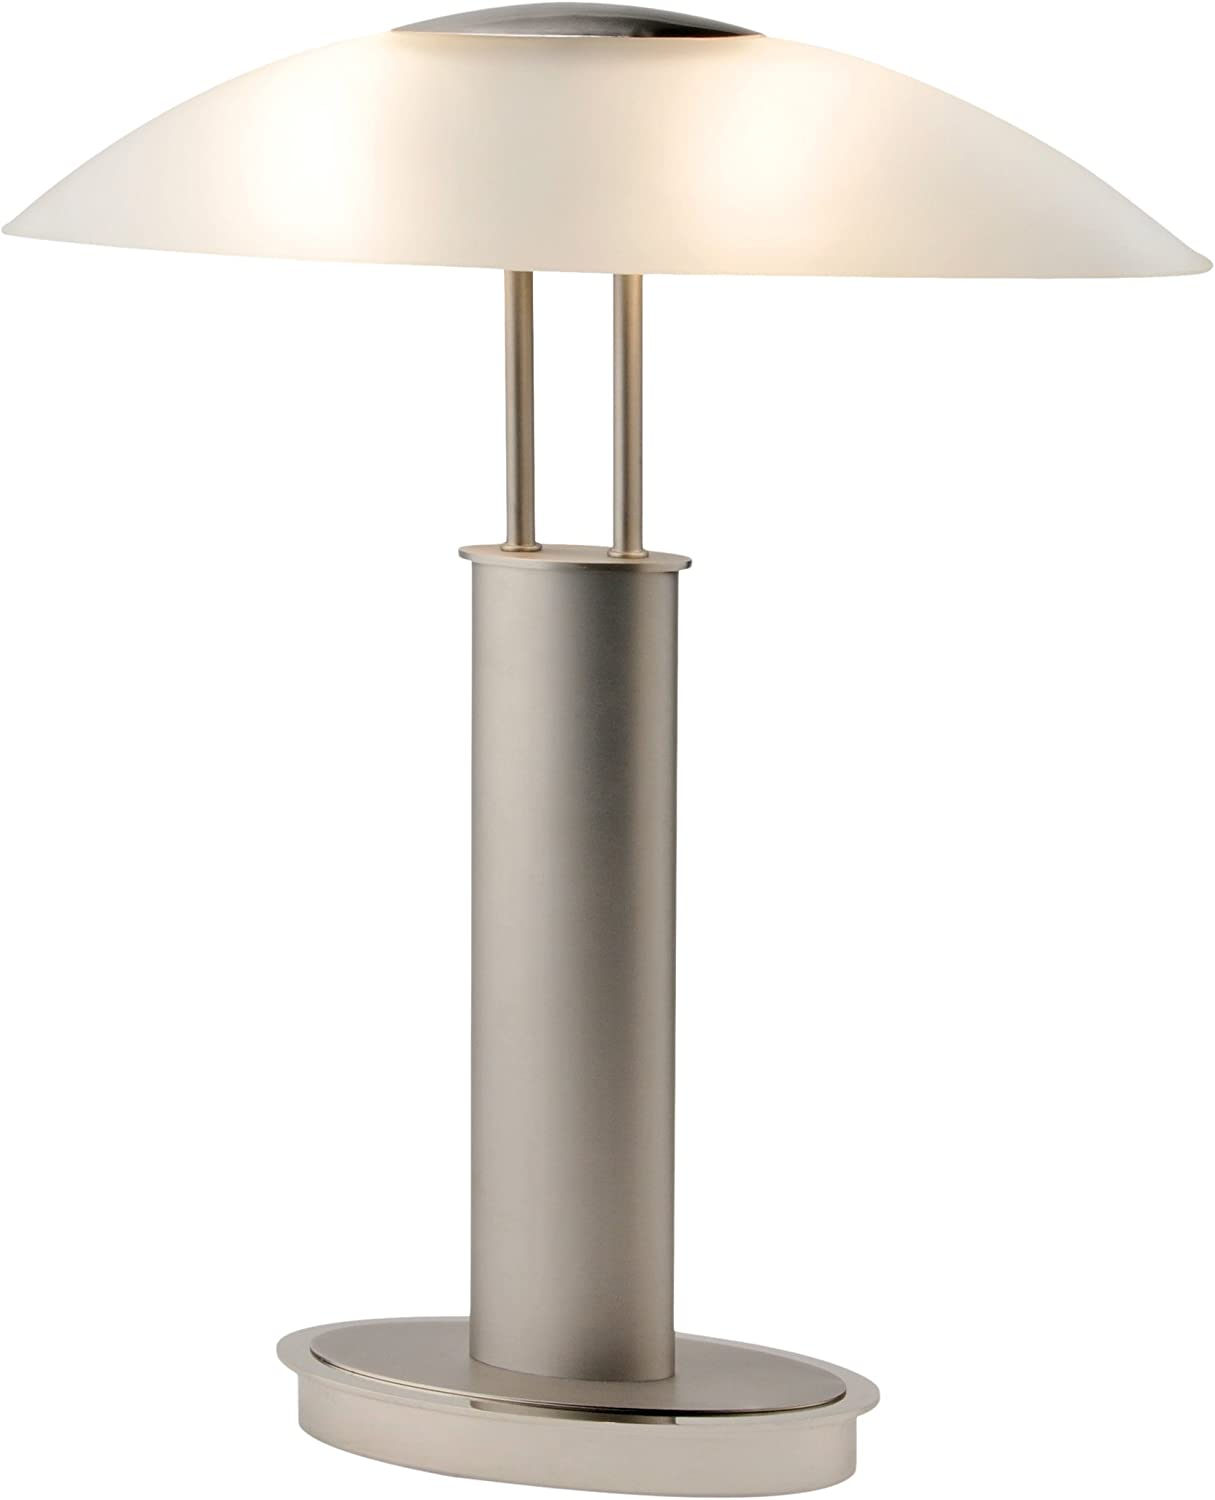 Artiva USA LED9476 Avalon Plus Modern 2-Tone Satin Nickel LED Touch Table Lamp with Oval Frosted Glass Shade, 18.5 , Brushed Steel